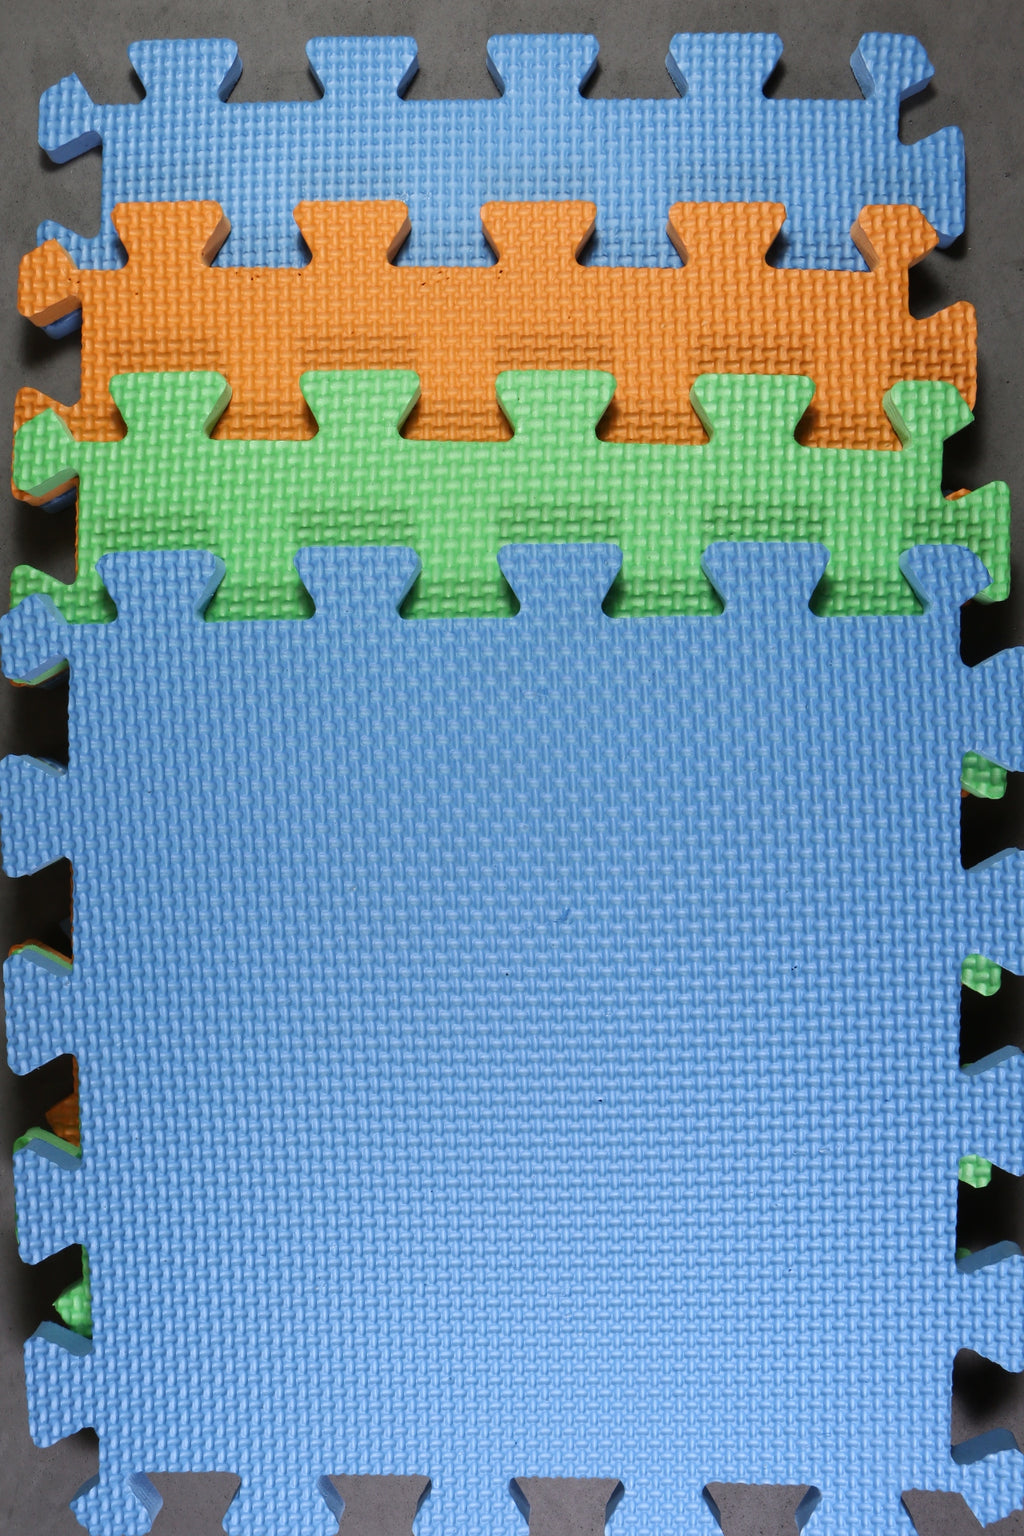 Knitter's Pride Blocking Mat Kit 8403